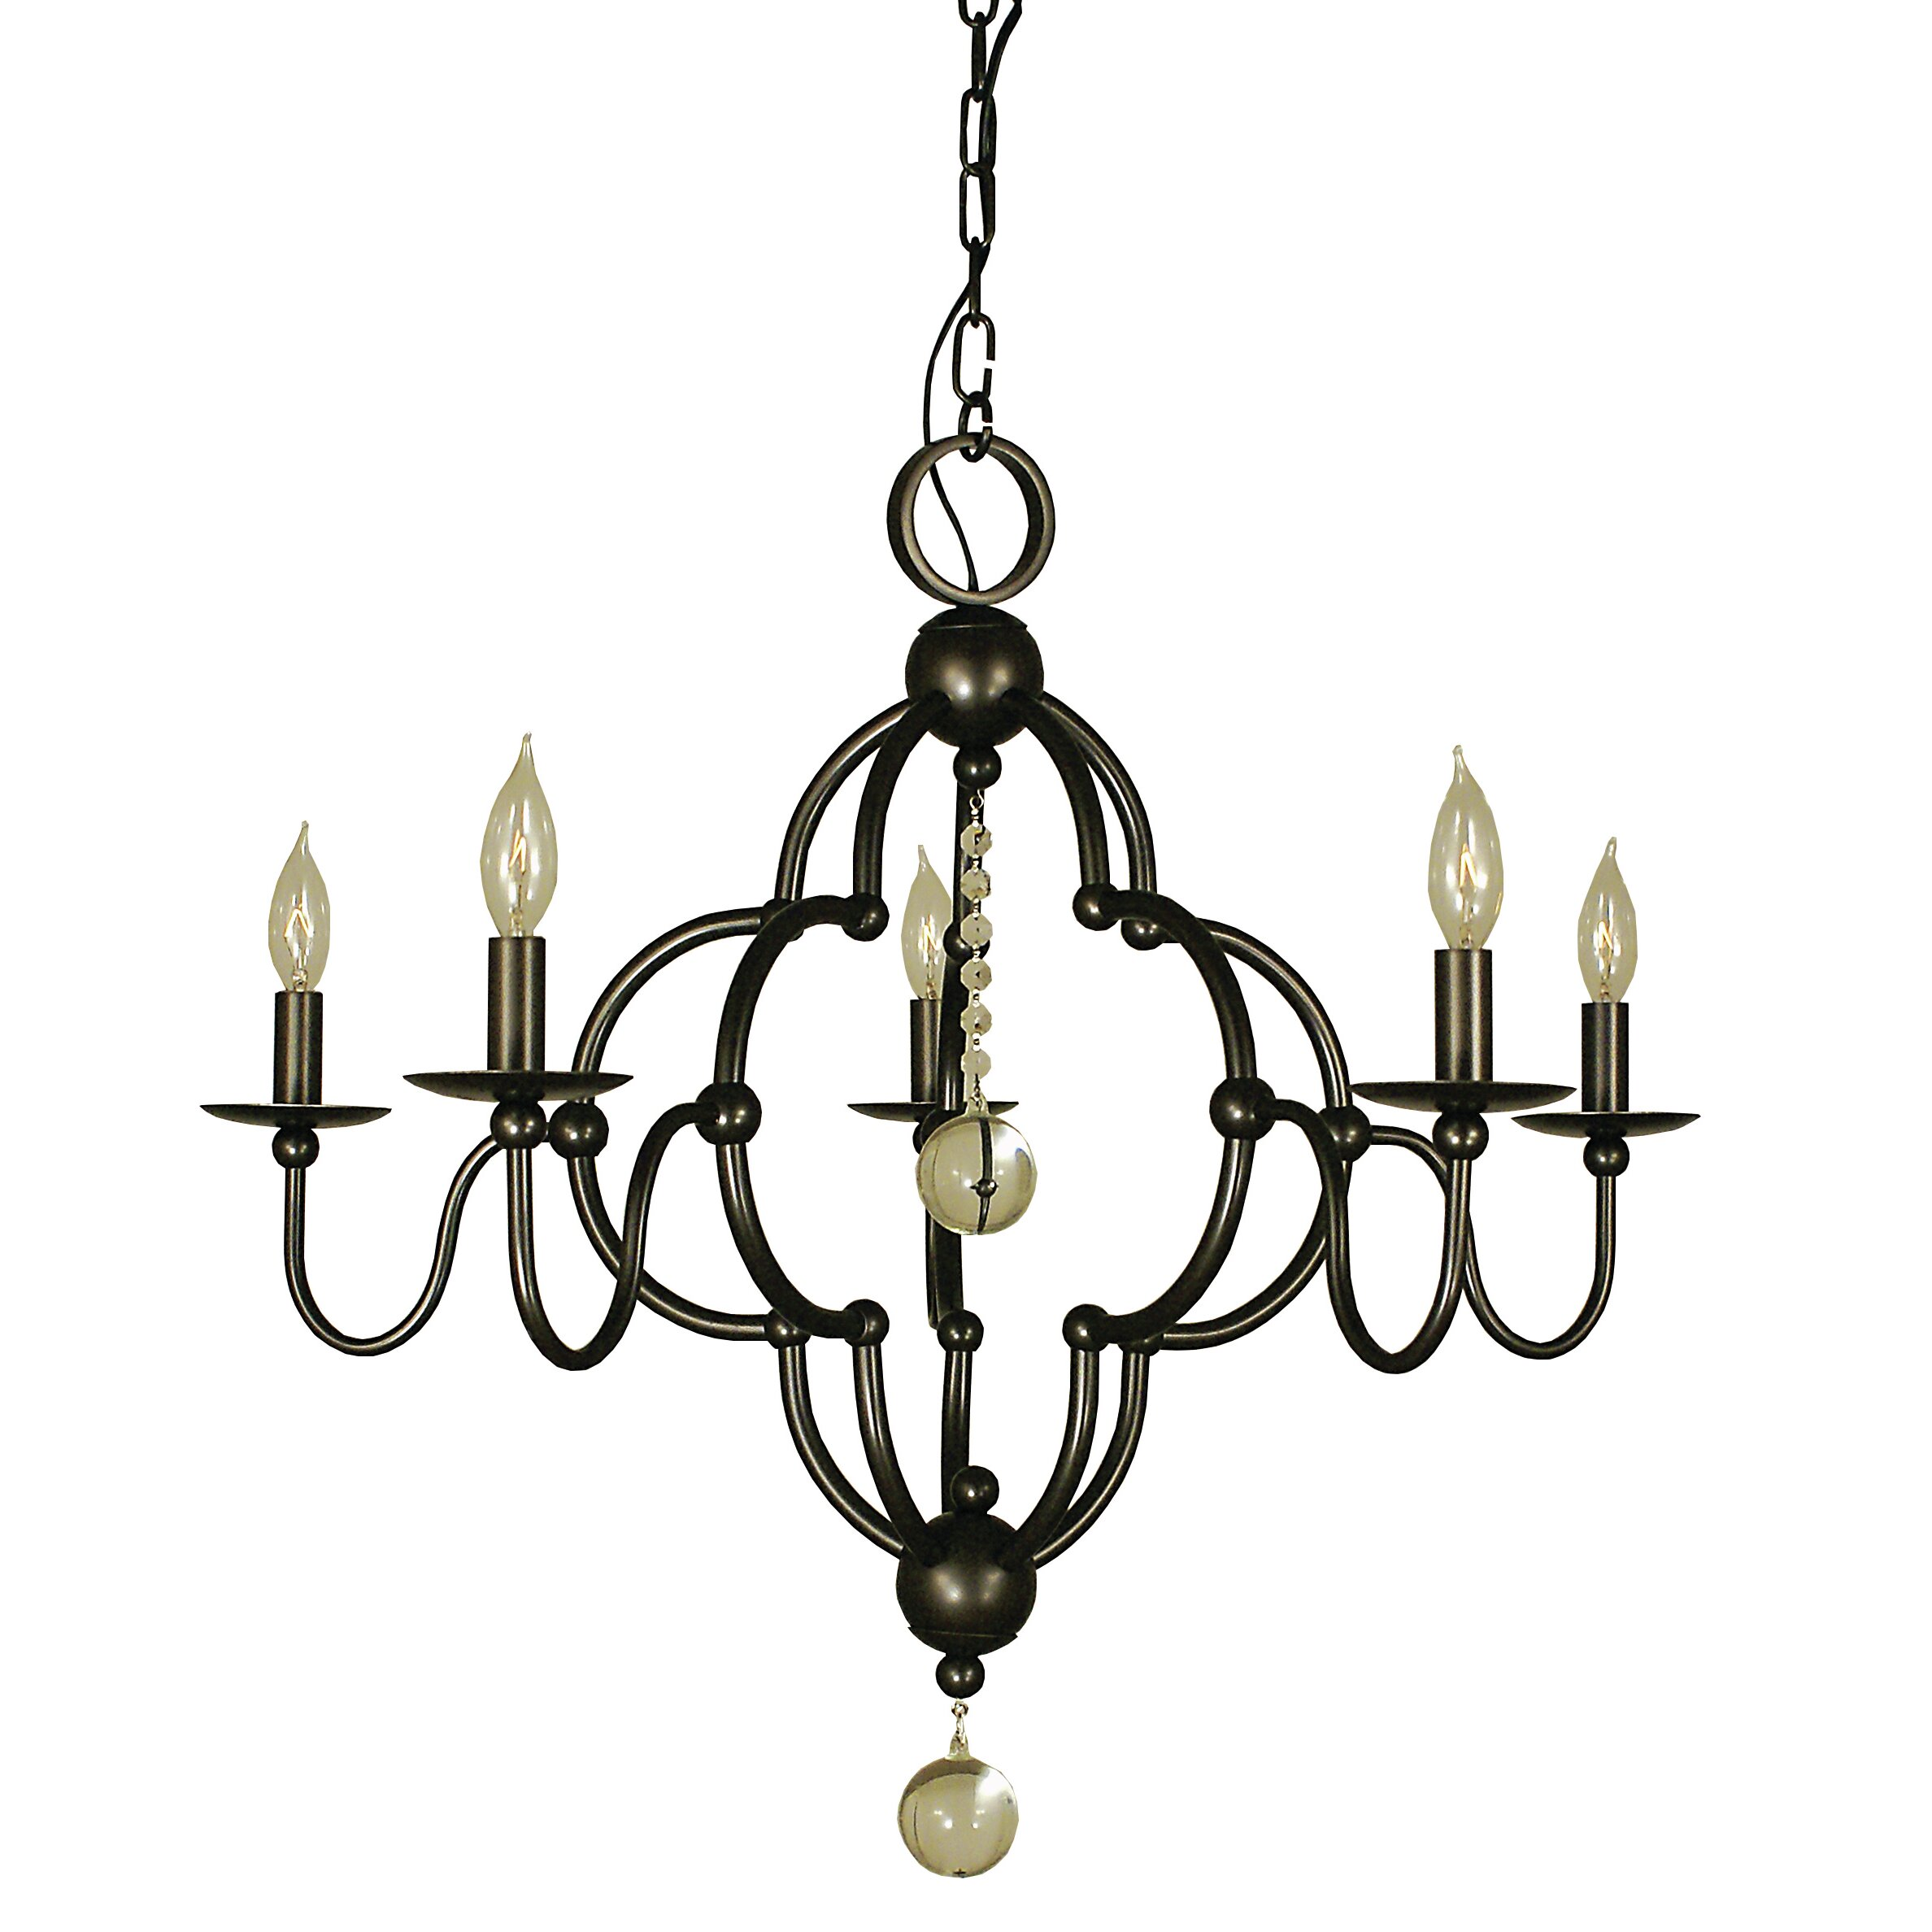 Quatrefoil 5 Light Candle Chandelier